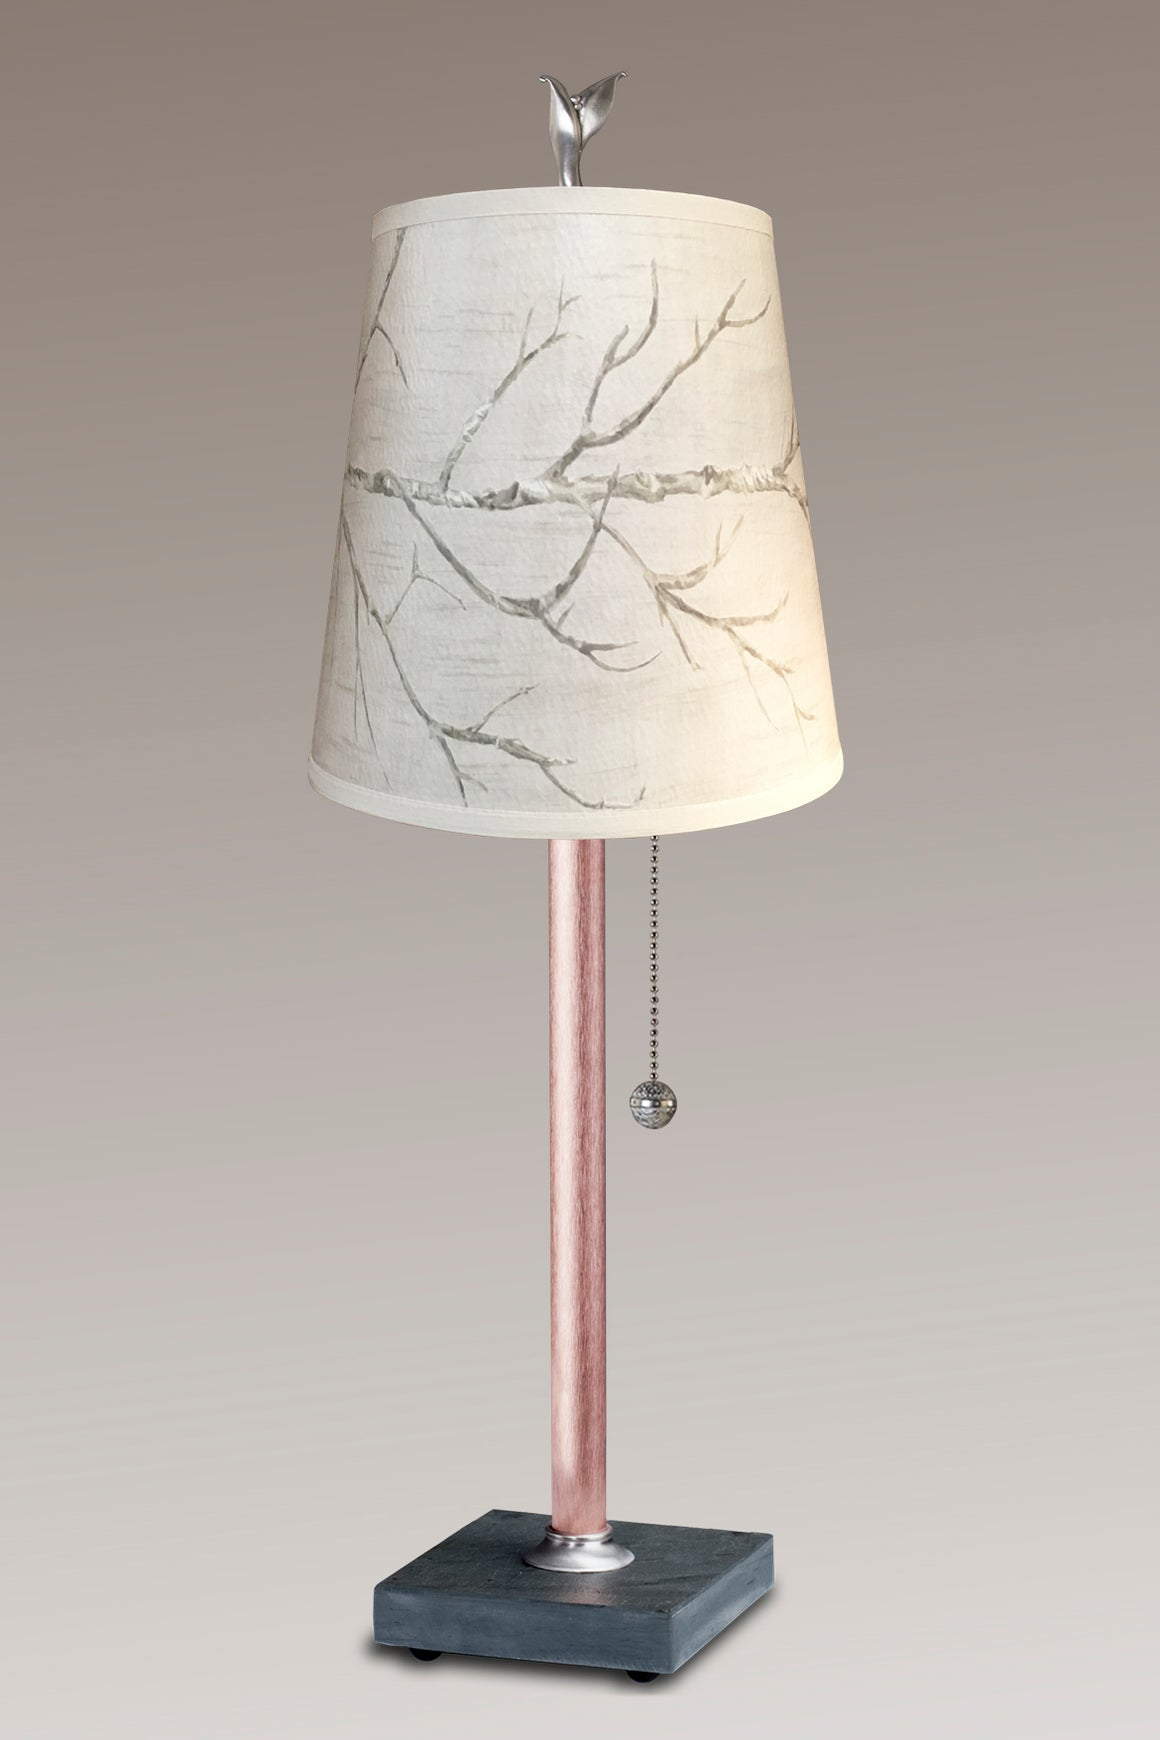 Copper Table Lamp on Vermont  Slate Base with Small Drum Shade in Sweeping Branch